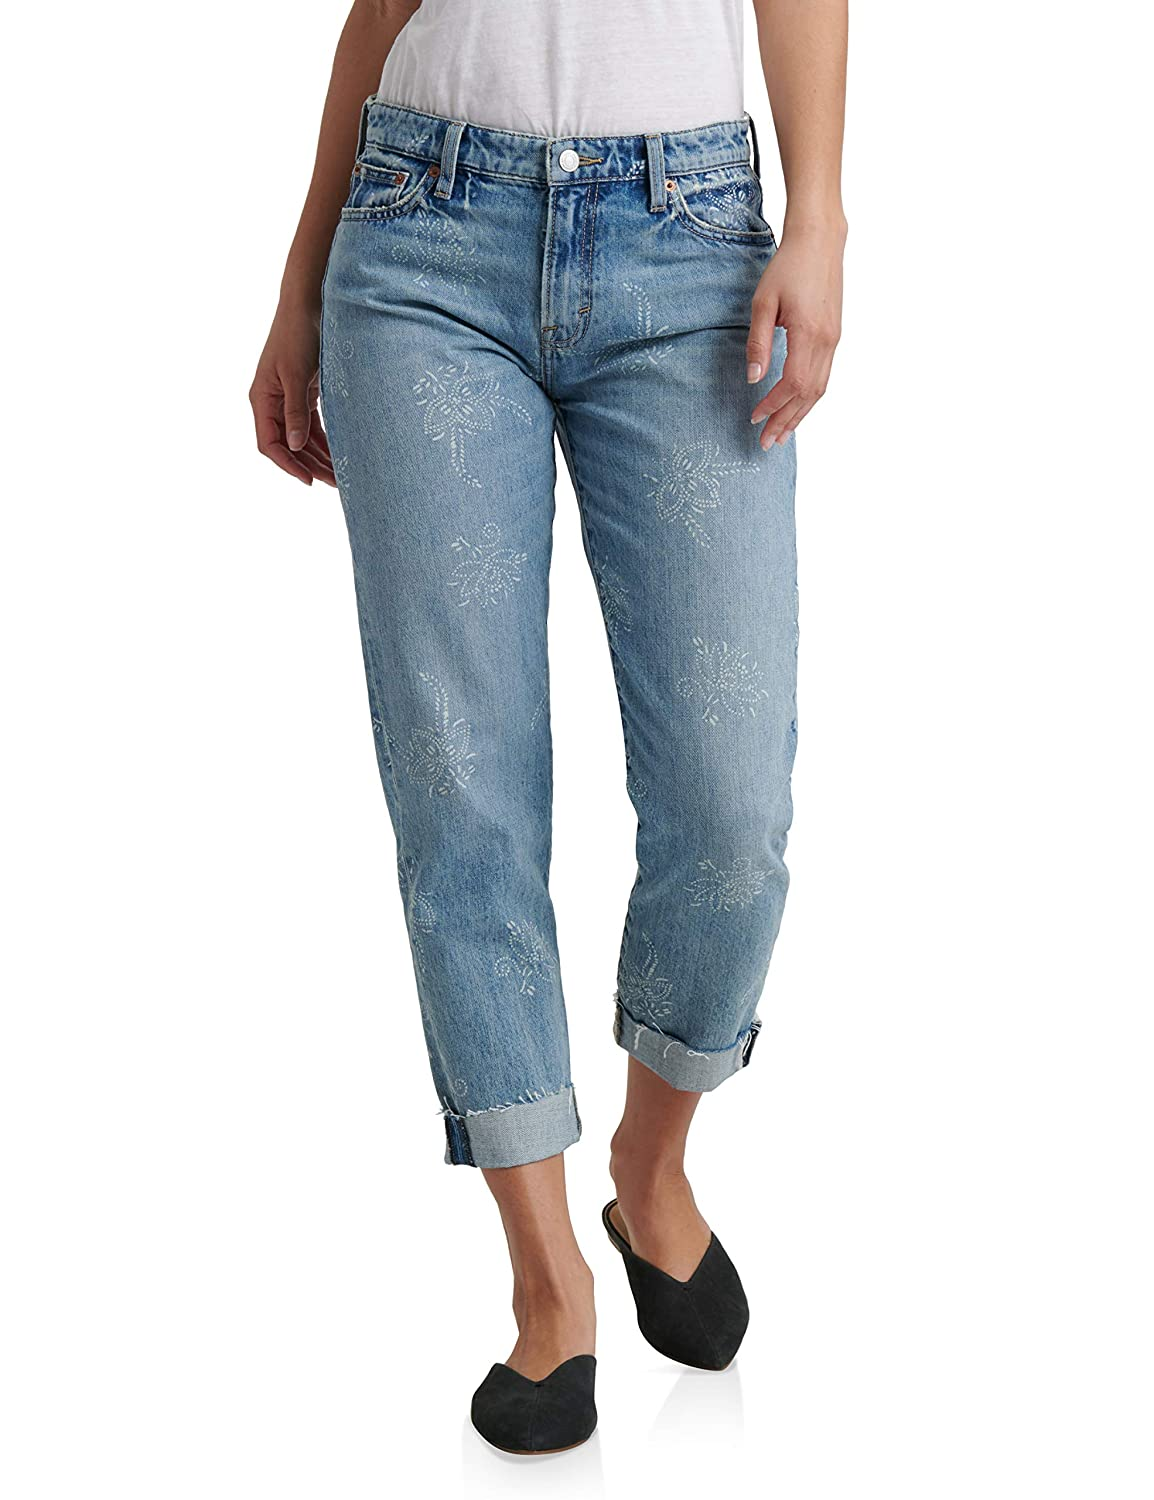 Indigo Lotus Lucky Brand Womens Sienna Slim Boyfriend Jean in Native